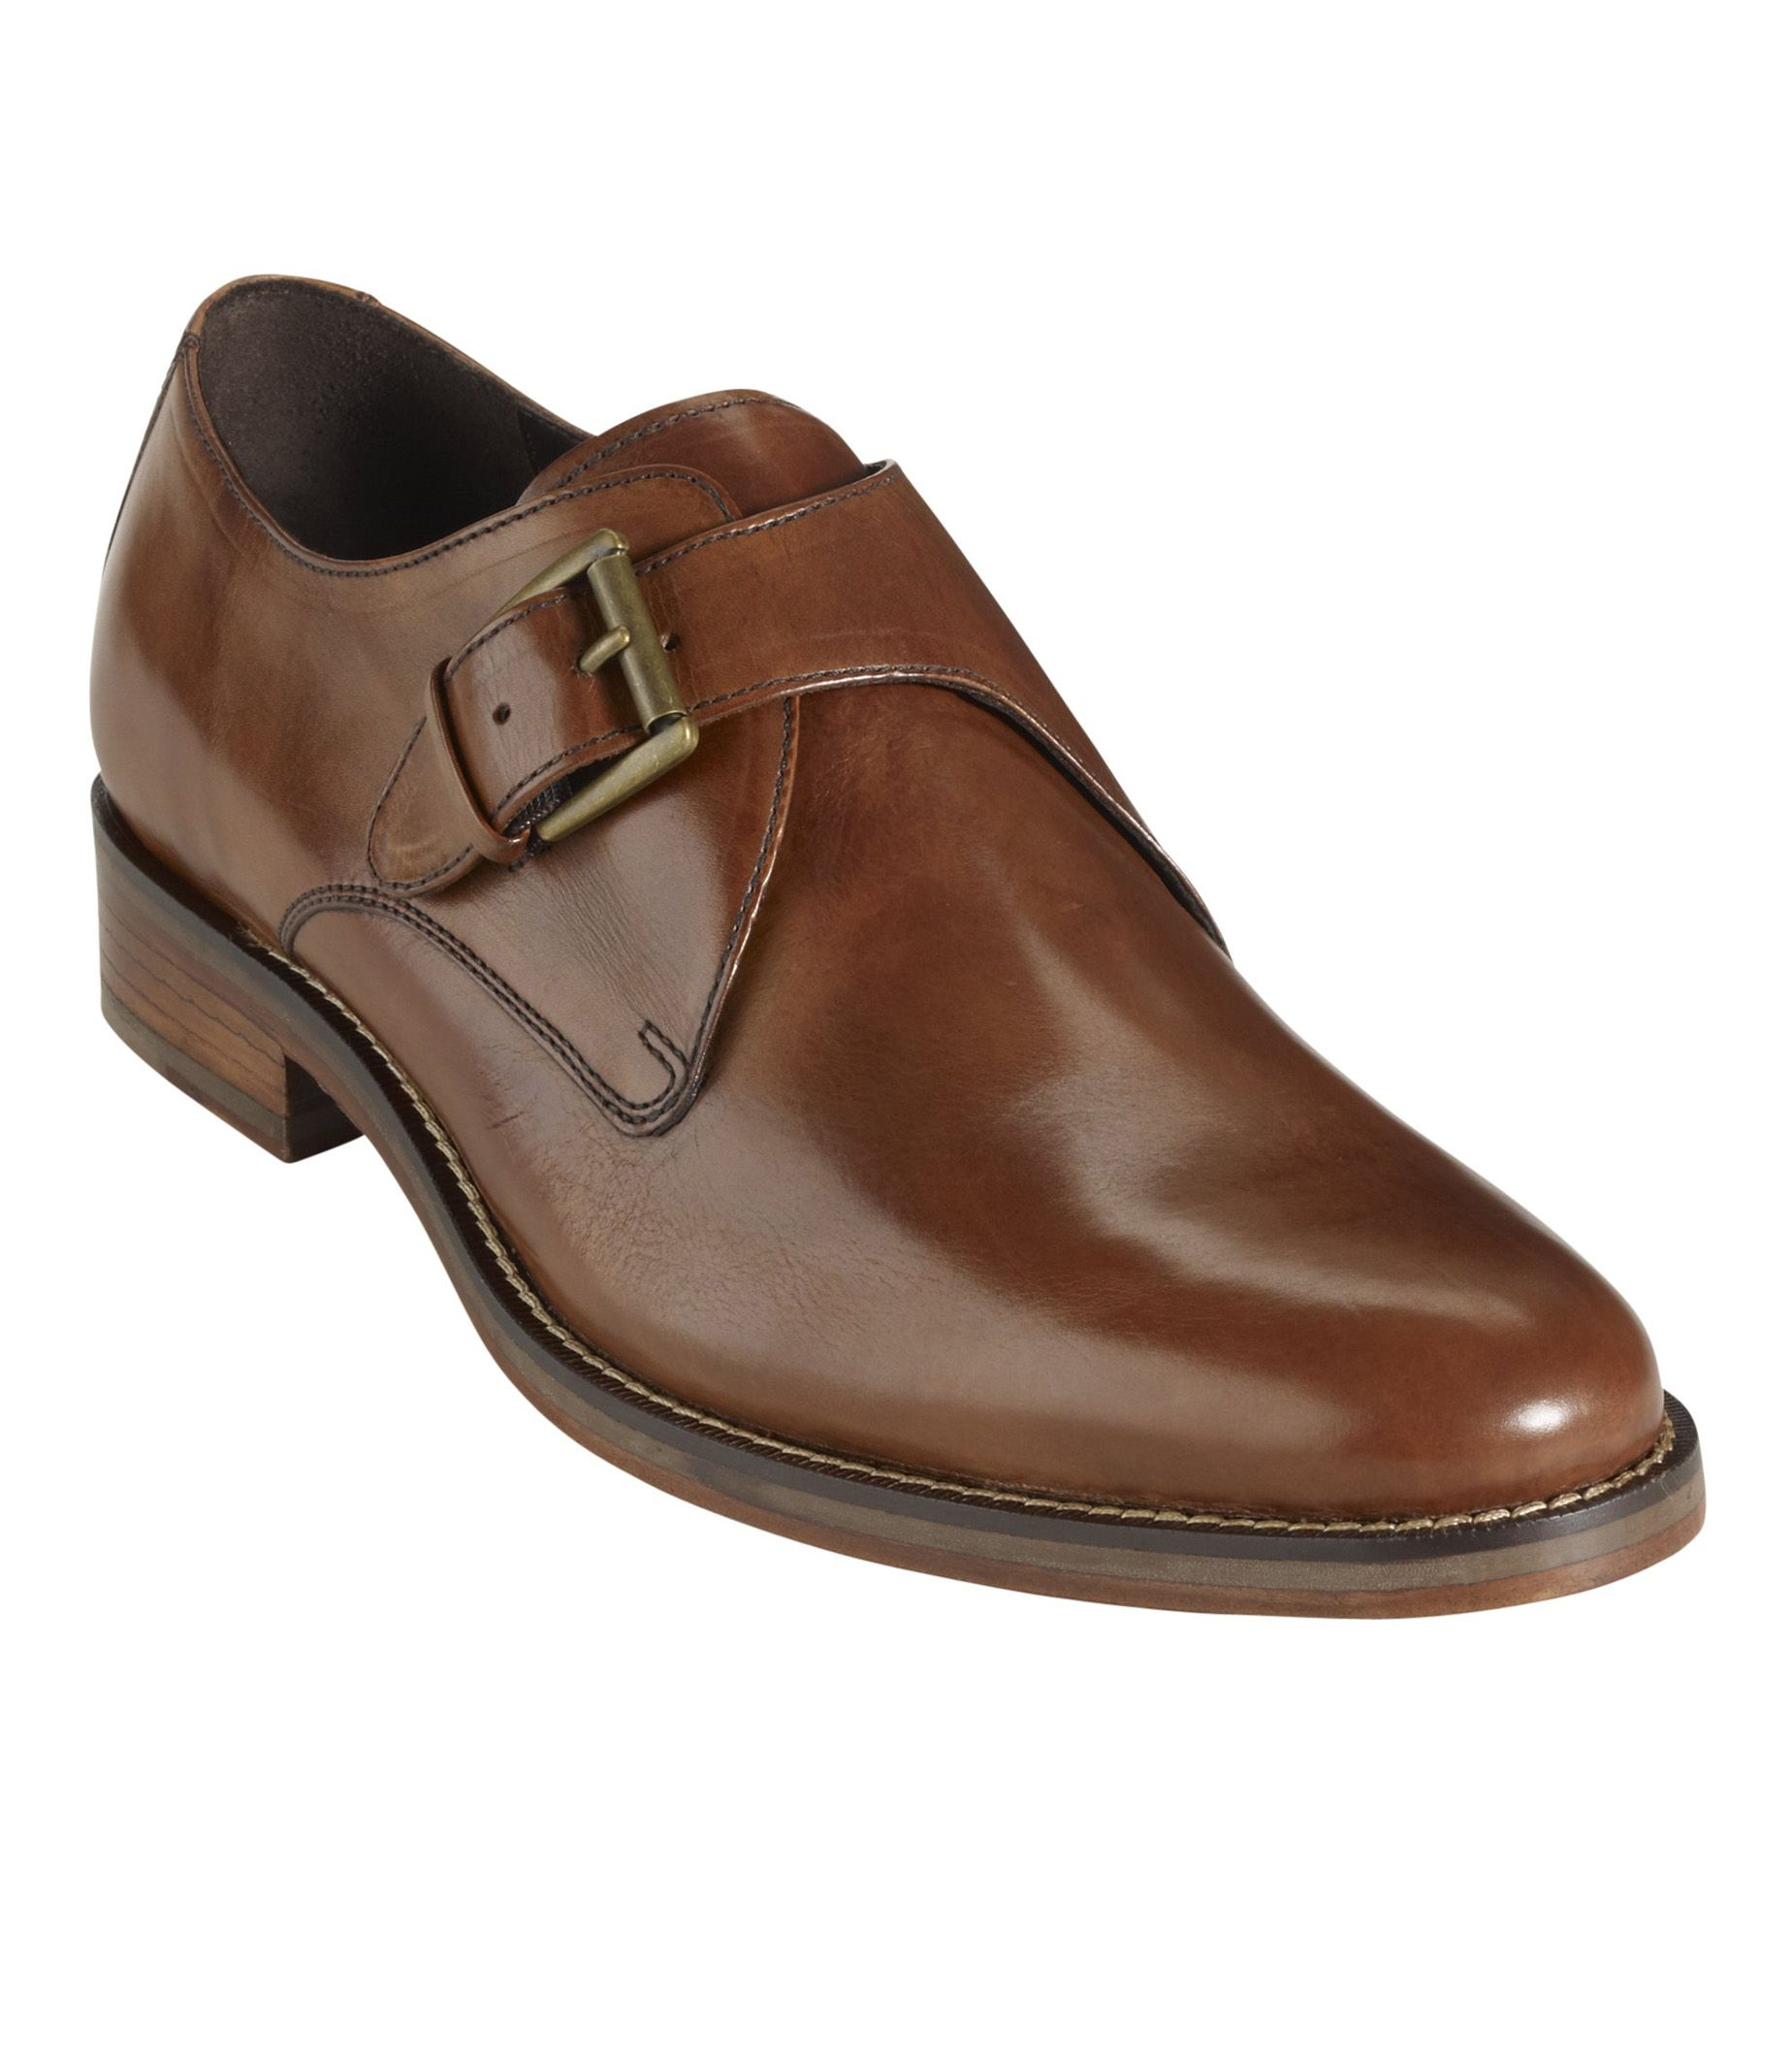 Cole Haan Men S Shoes Cole Haan Shoes And Sneakers At